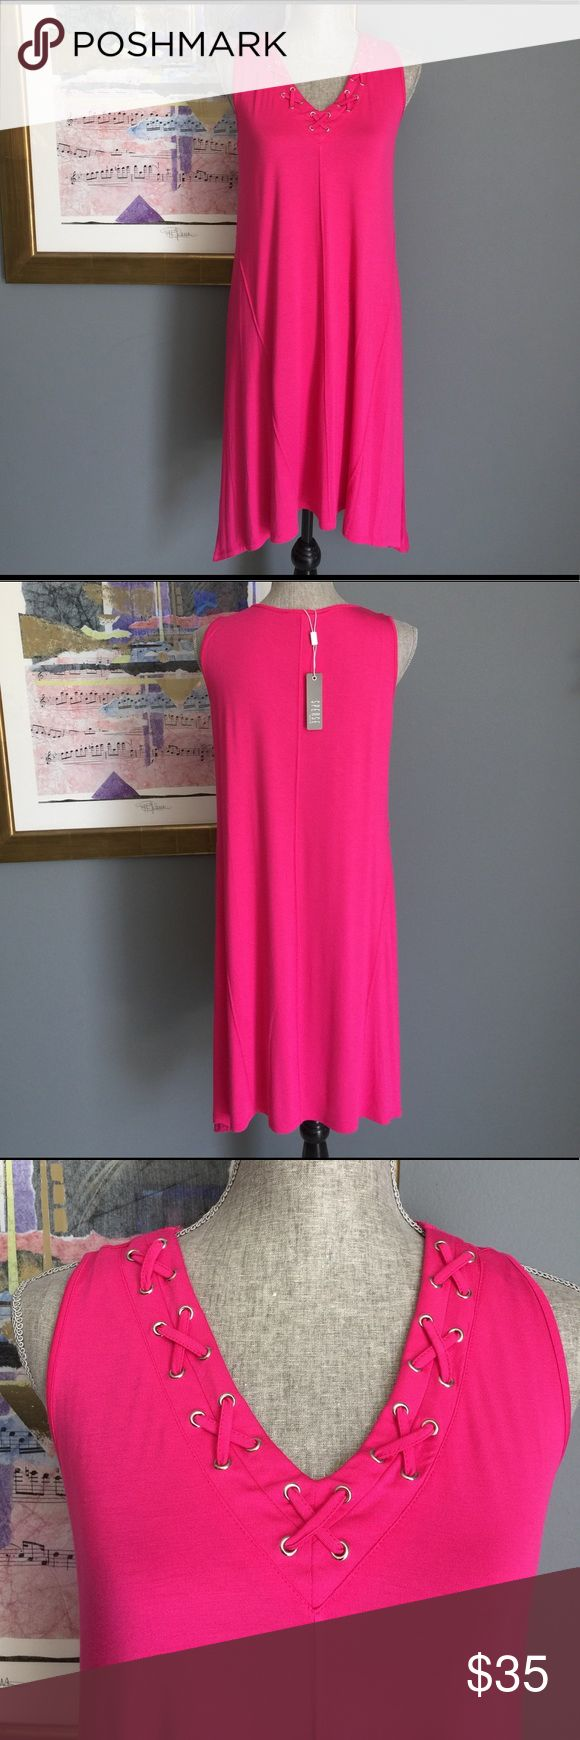 Hot Pink Dress by Spense Petite Soft, summery hot pink dress from Spense!  Made of 95% viscose/5% spandex.  Machine washable. Spense Dresses